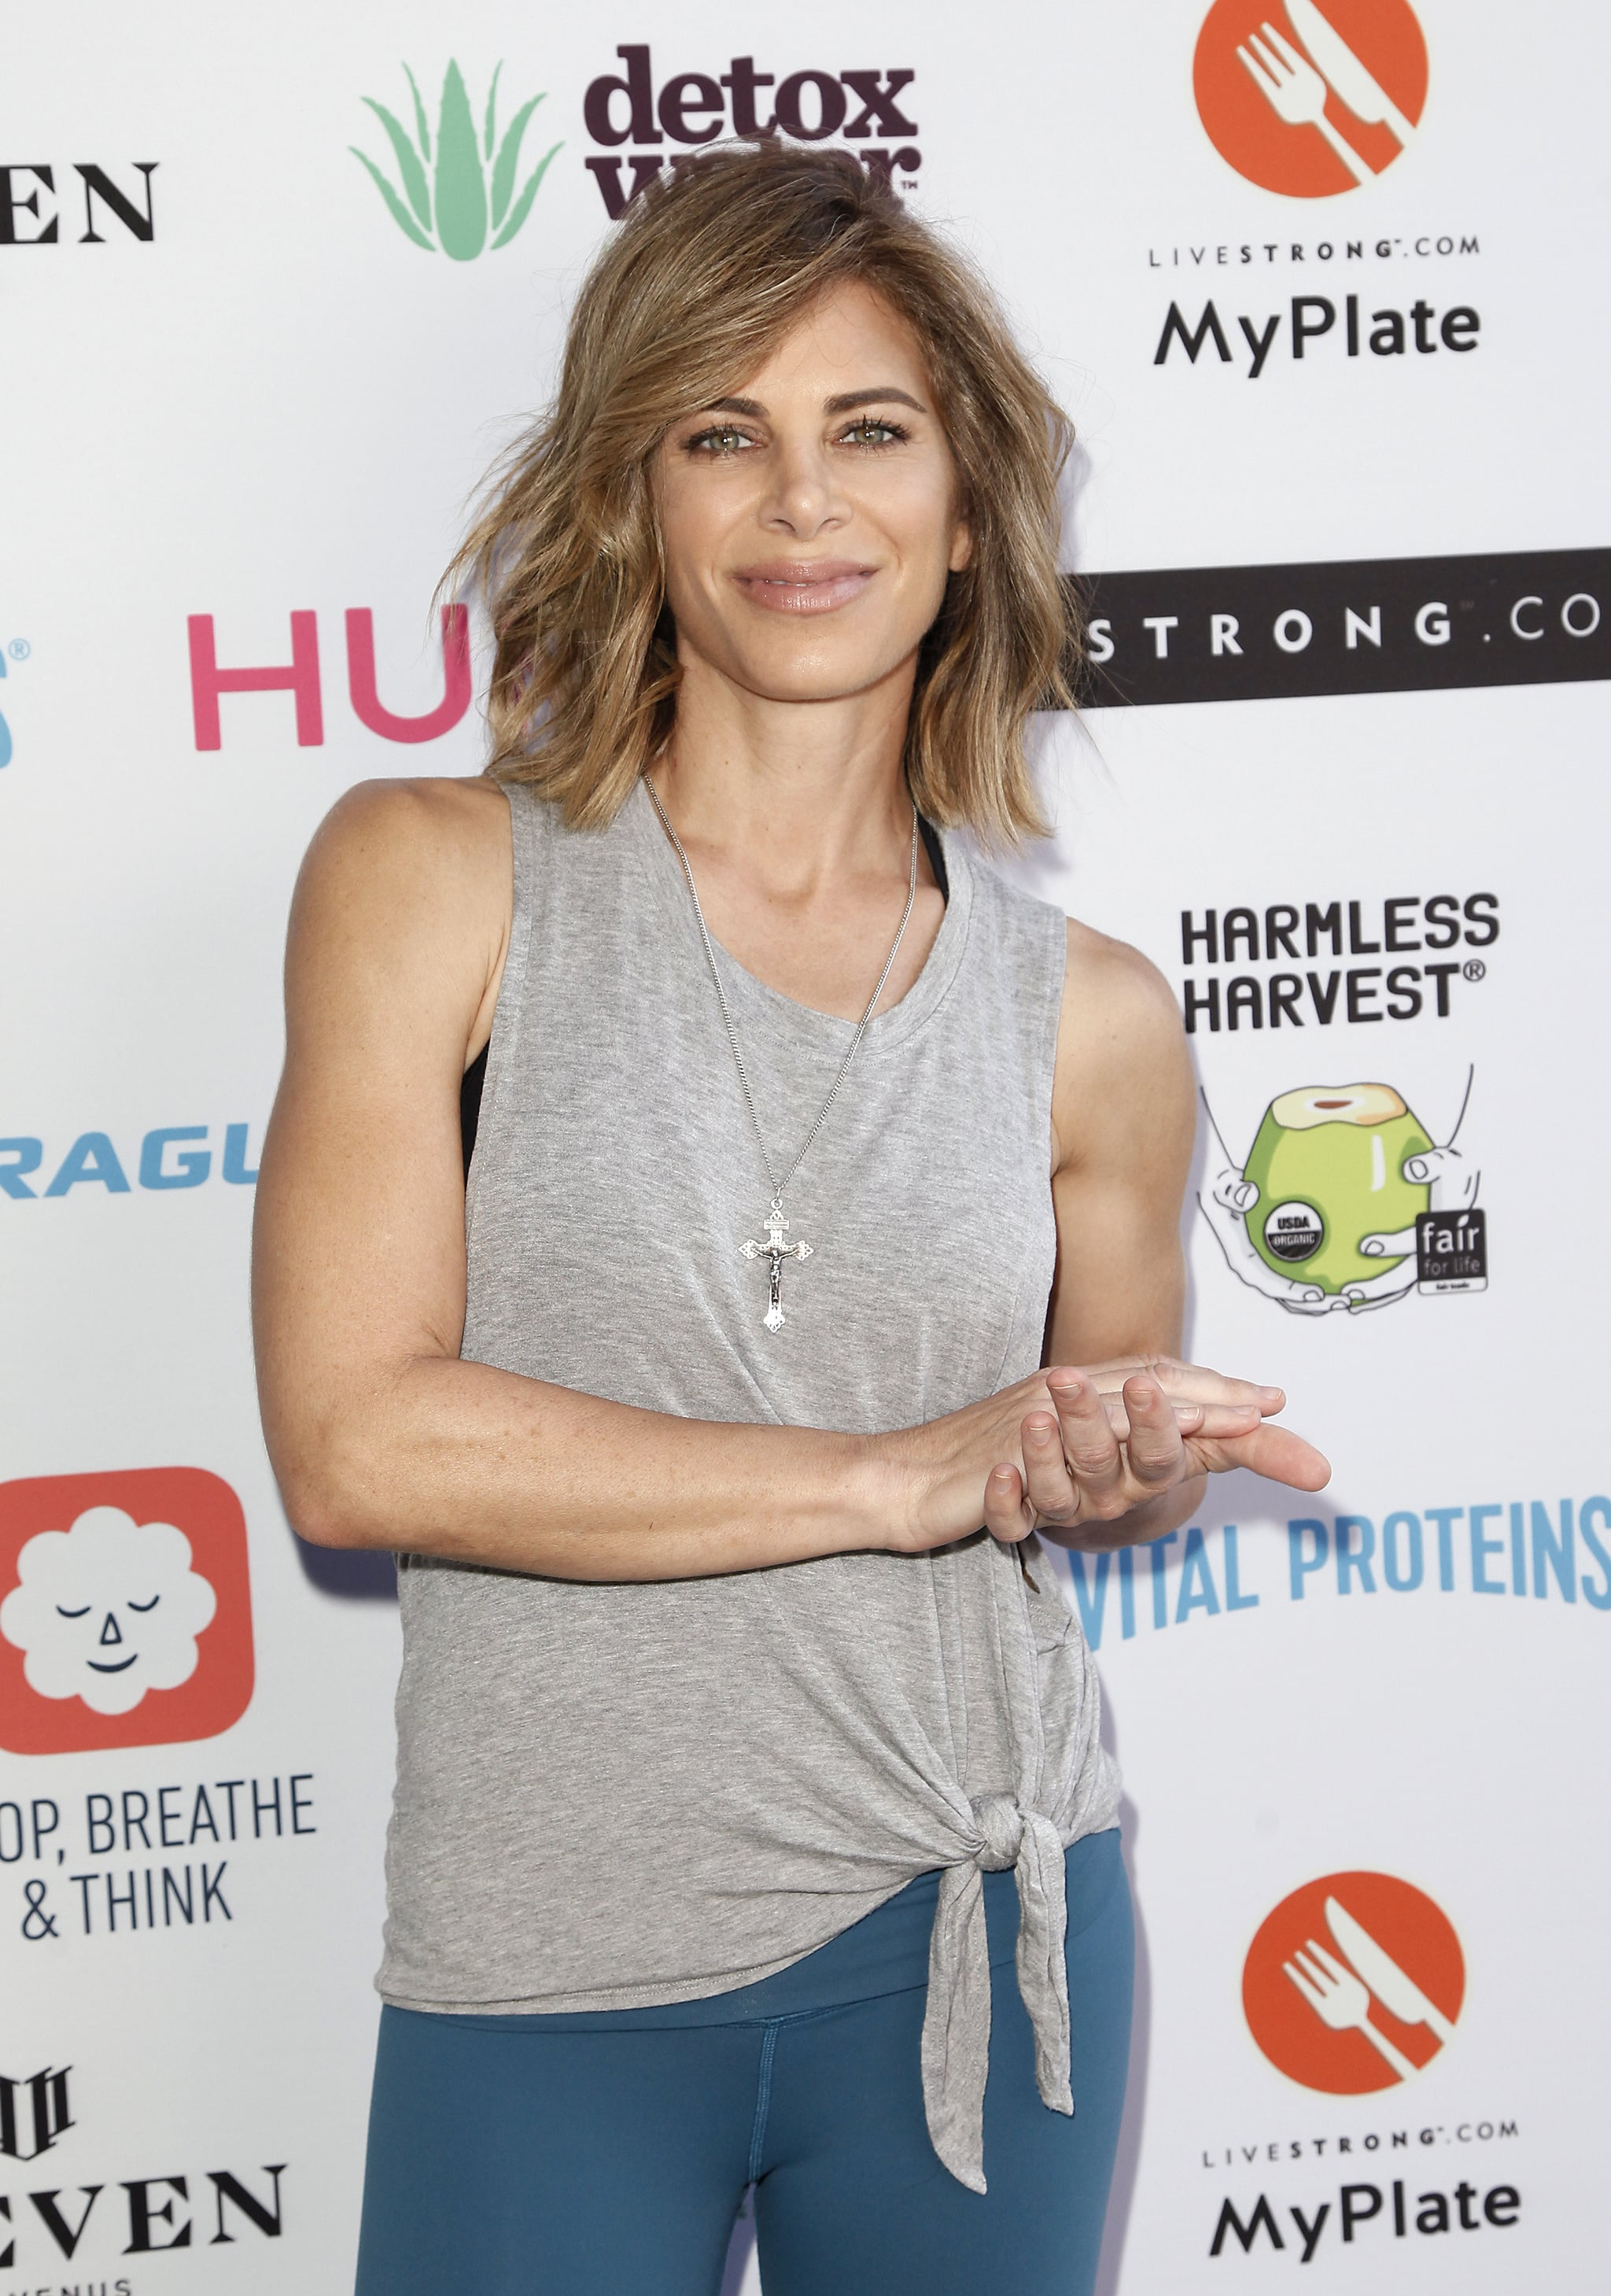 PASADENA, CA - AUGUST 04:  Jillian Michaels attends the Livestrong.com's 1st annual STRONGER Weekend Retreat at Rose Bowl on August 4, 2018 in Pasadena, California.  (Photo by Tibrina Hobson/Getty Images)